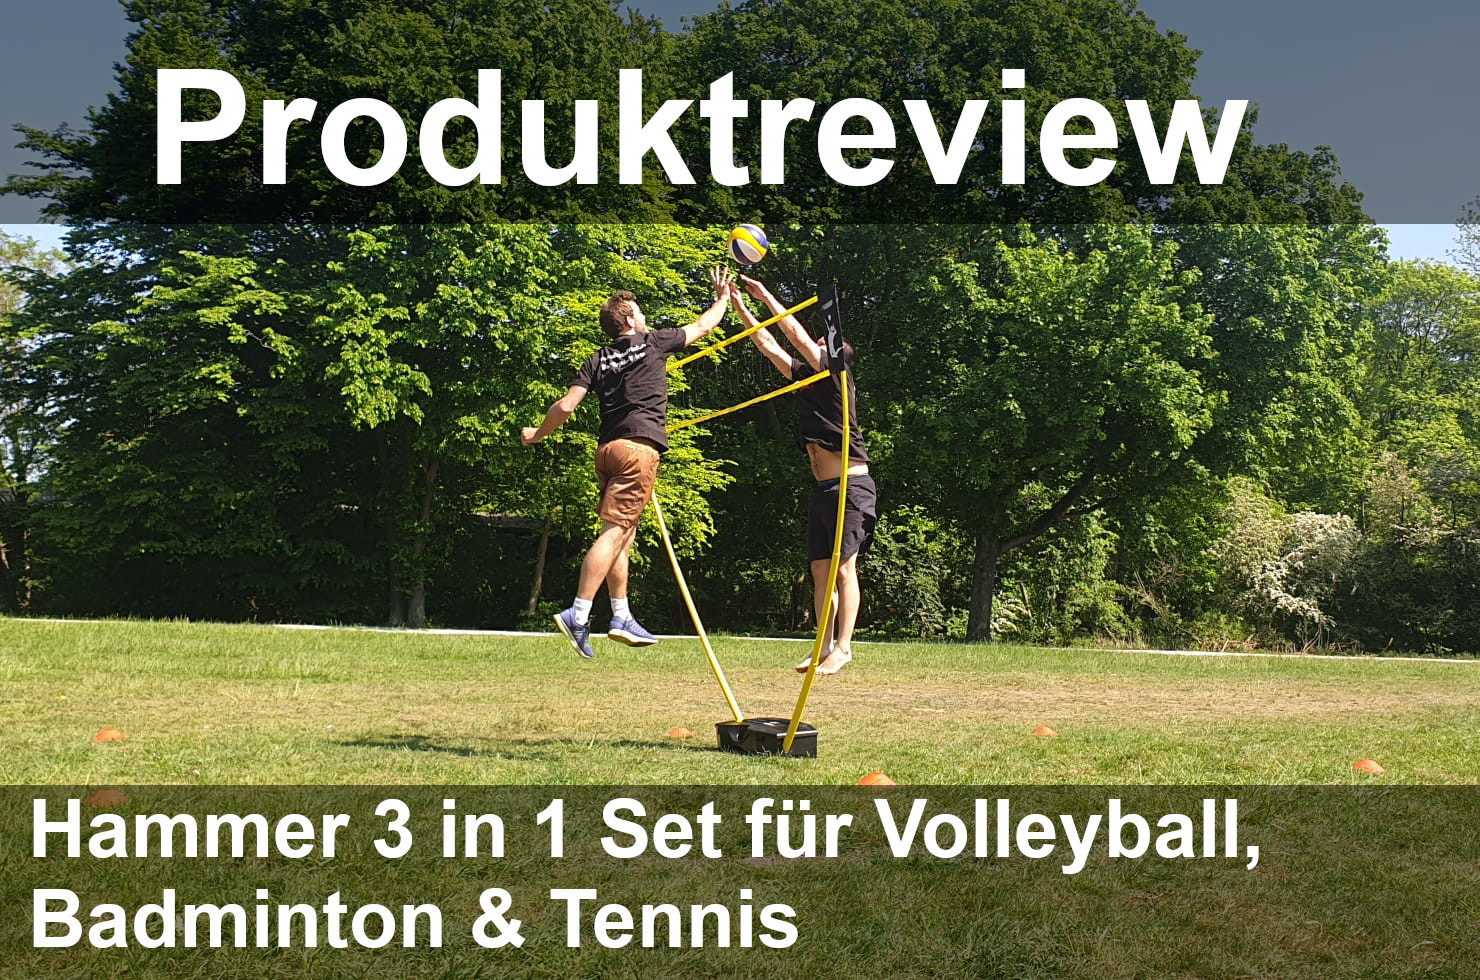 Produktreview: Hammer 3 in 1 Set für Volleyball, Badminton und Tennis